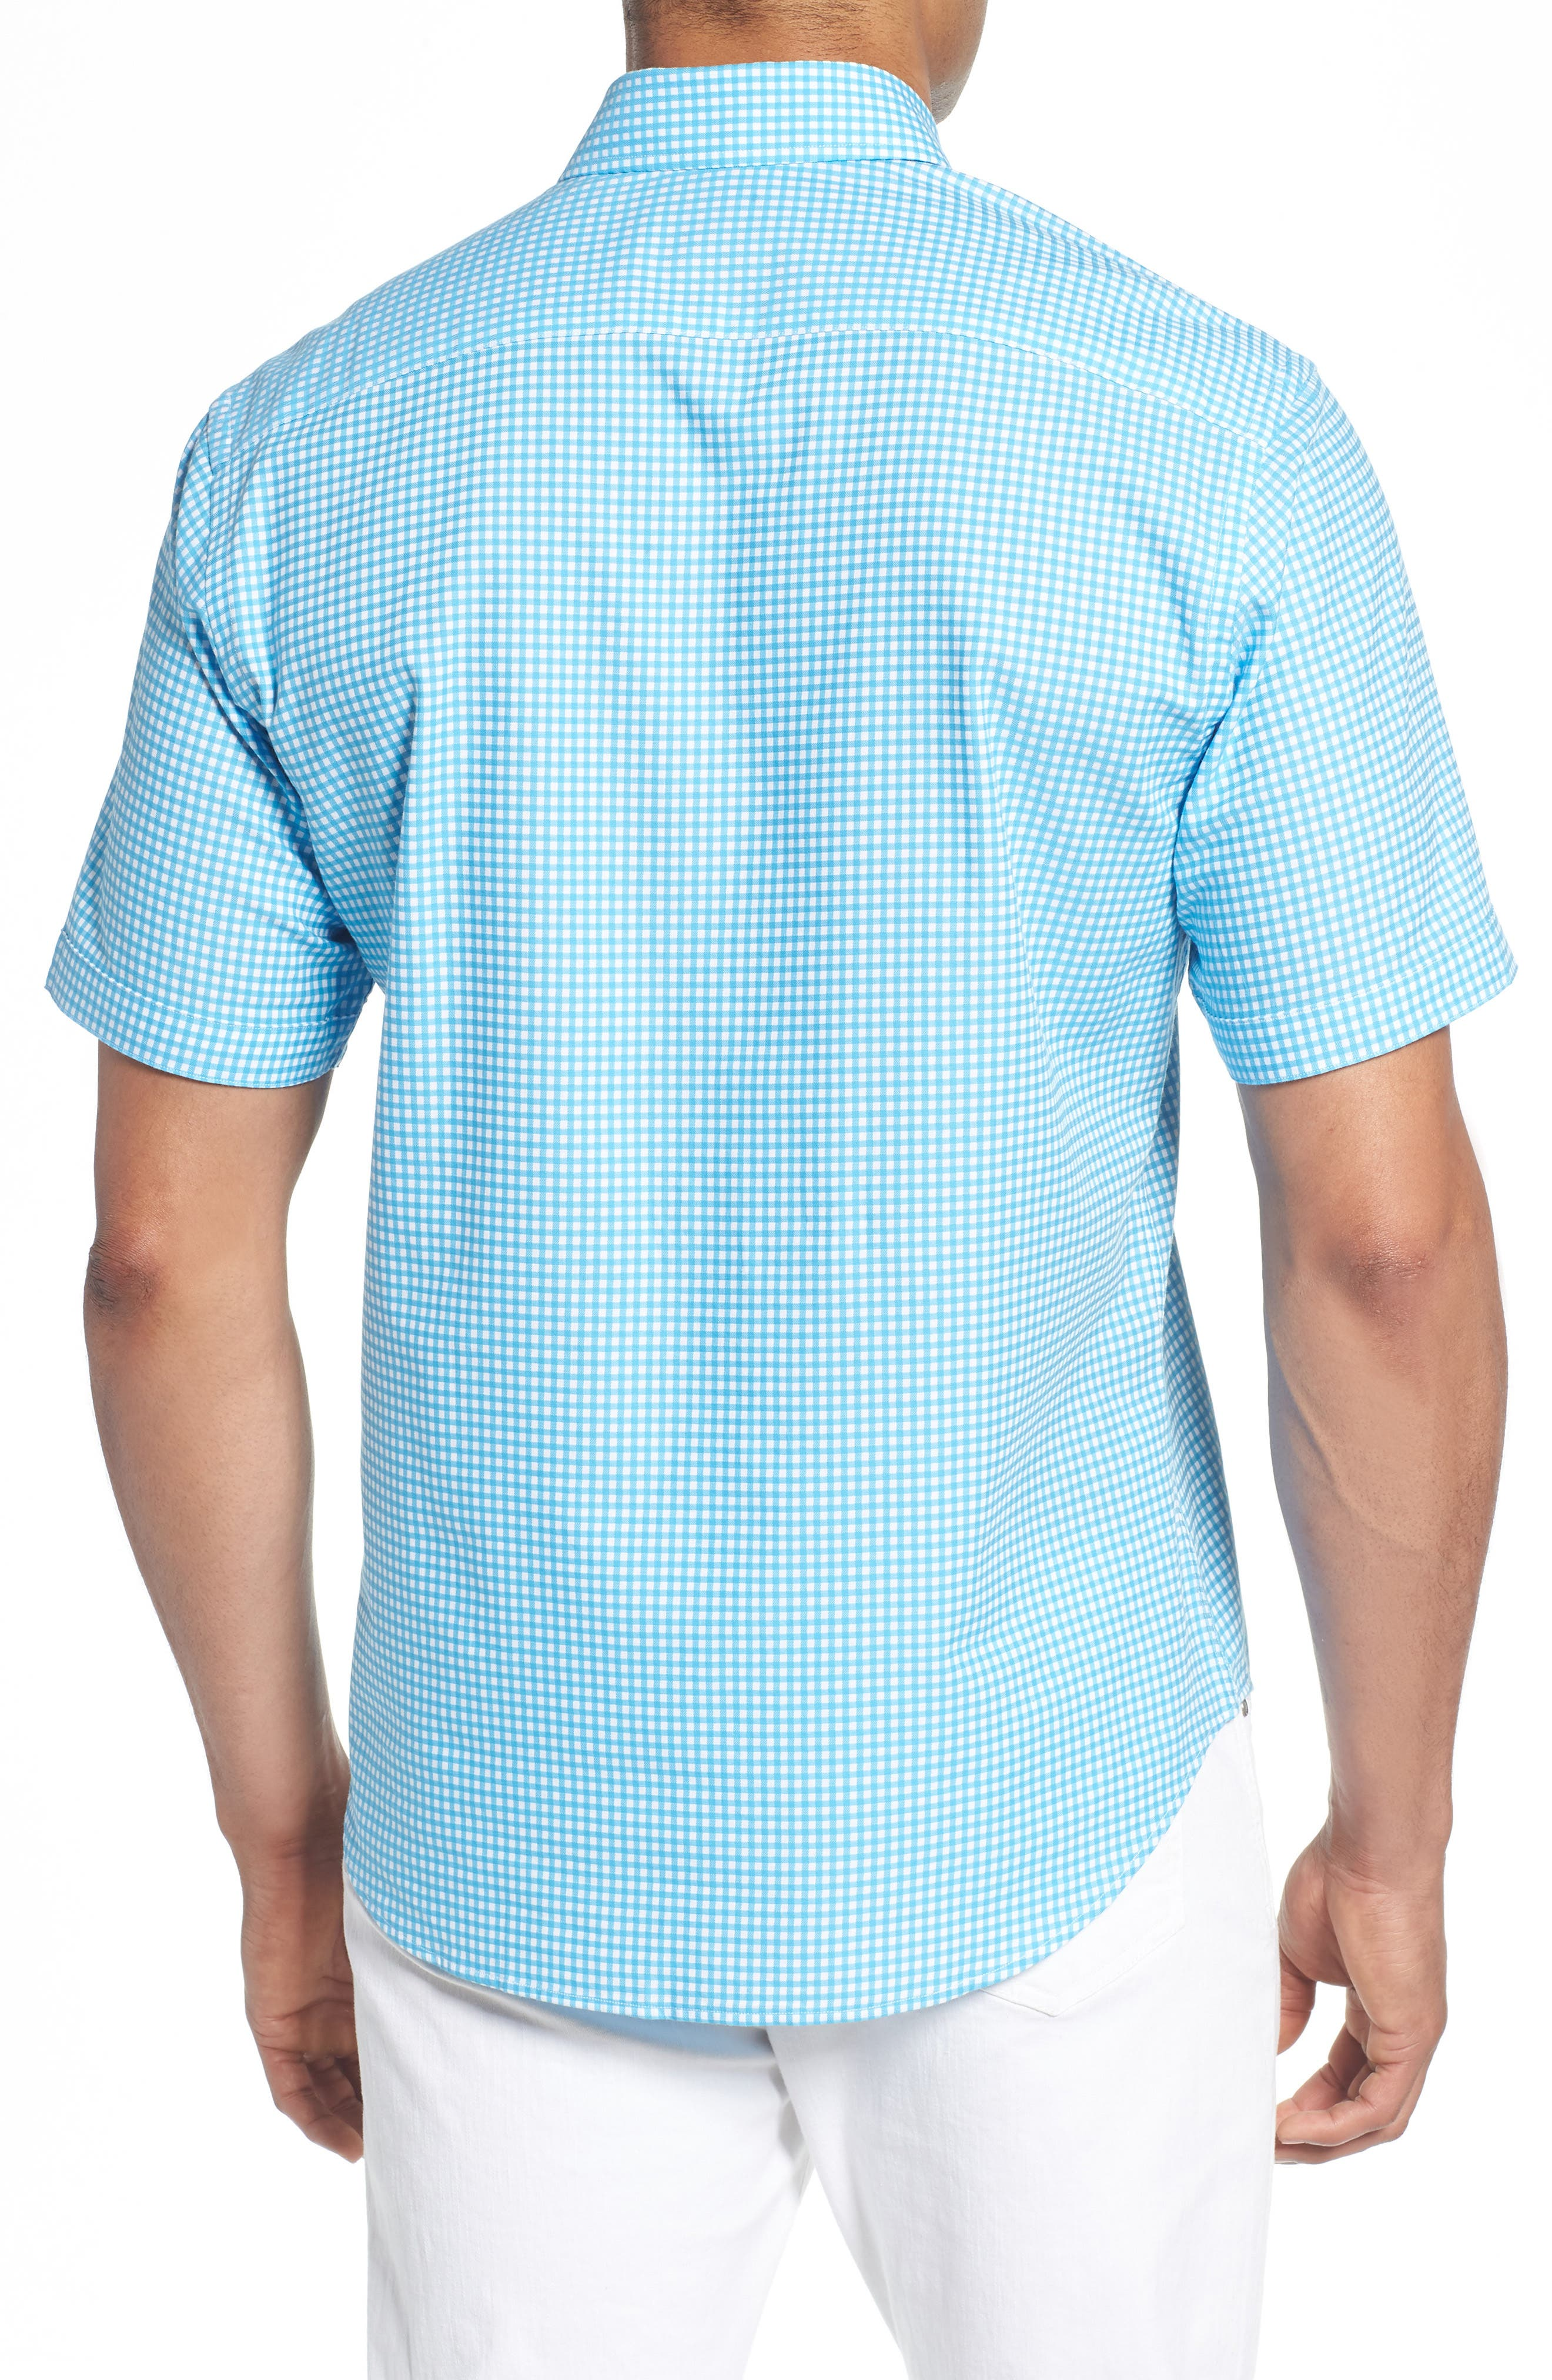 Aden Regular Fit Sport Shirt,                             Alternate thumbnail 2, color,                             465